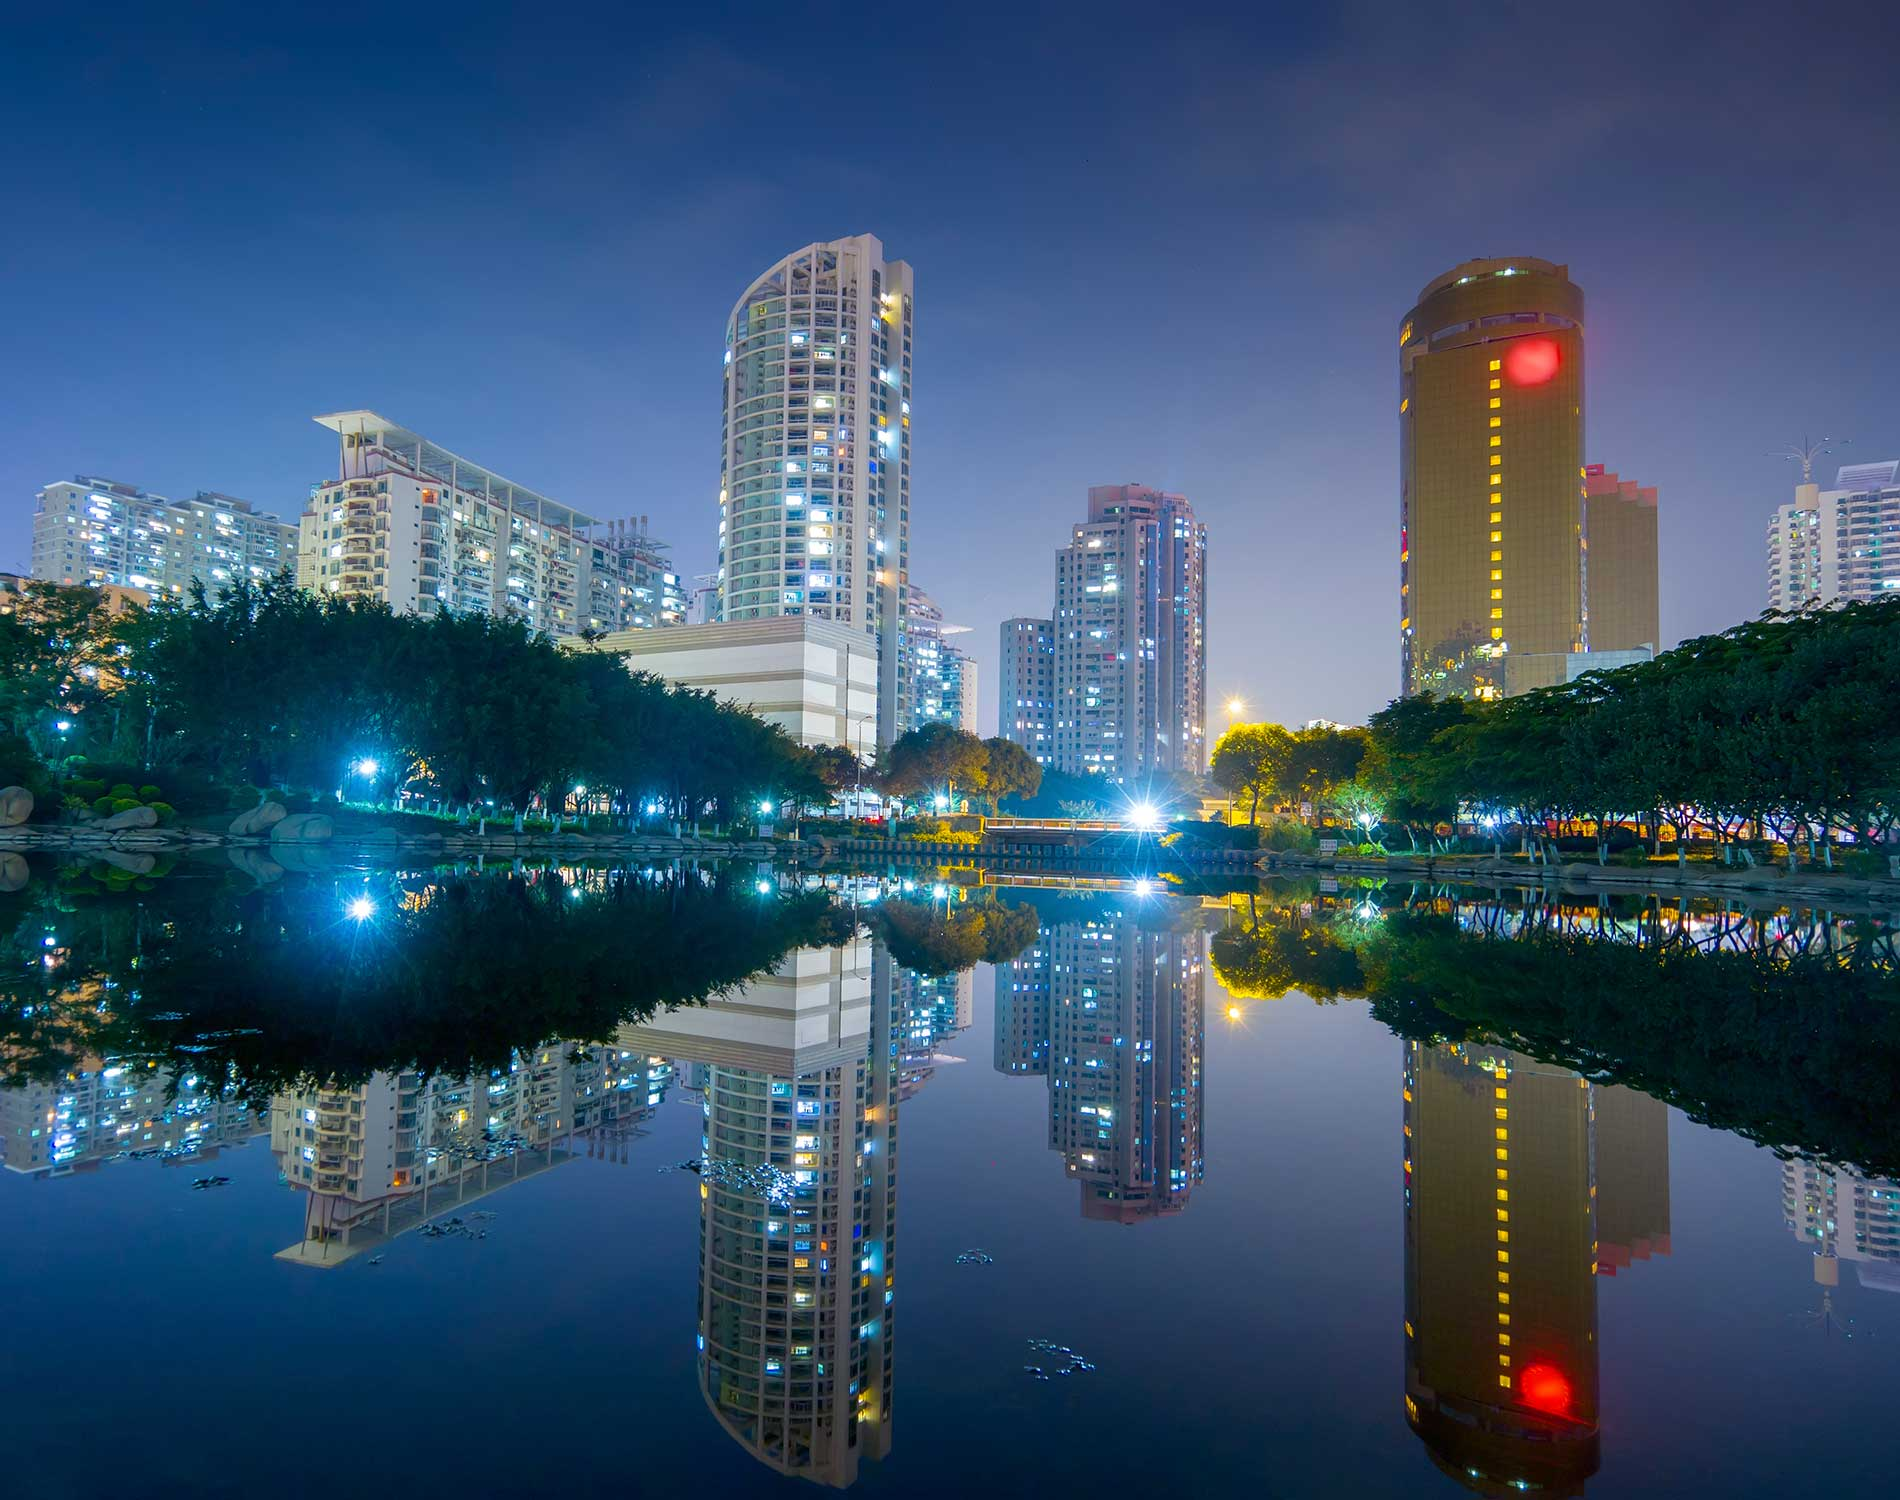 /~/media/images/website/background%20images/offices/xiamen/xiamen_city_1900x1500px.ashx